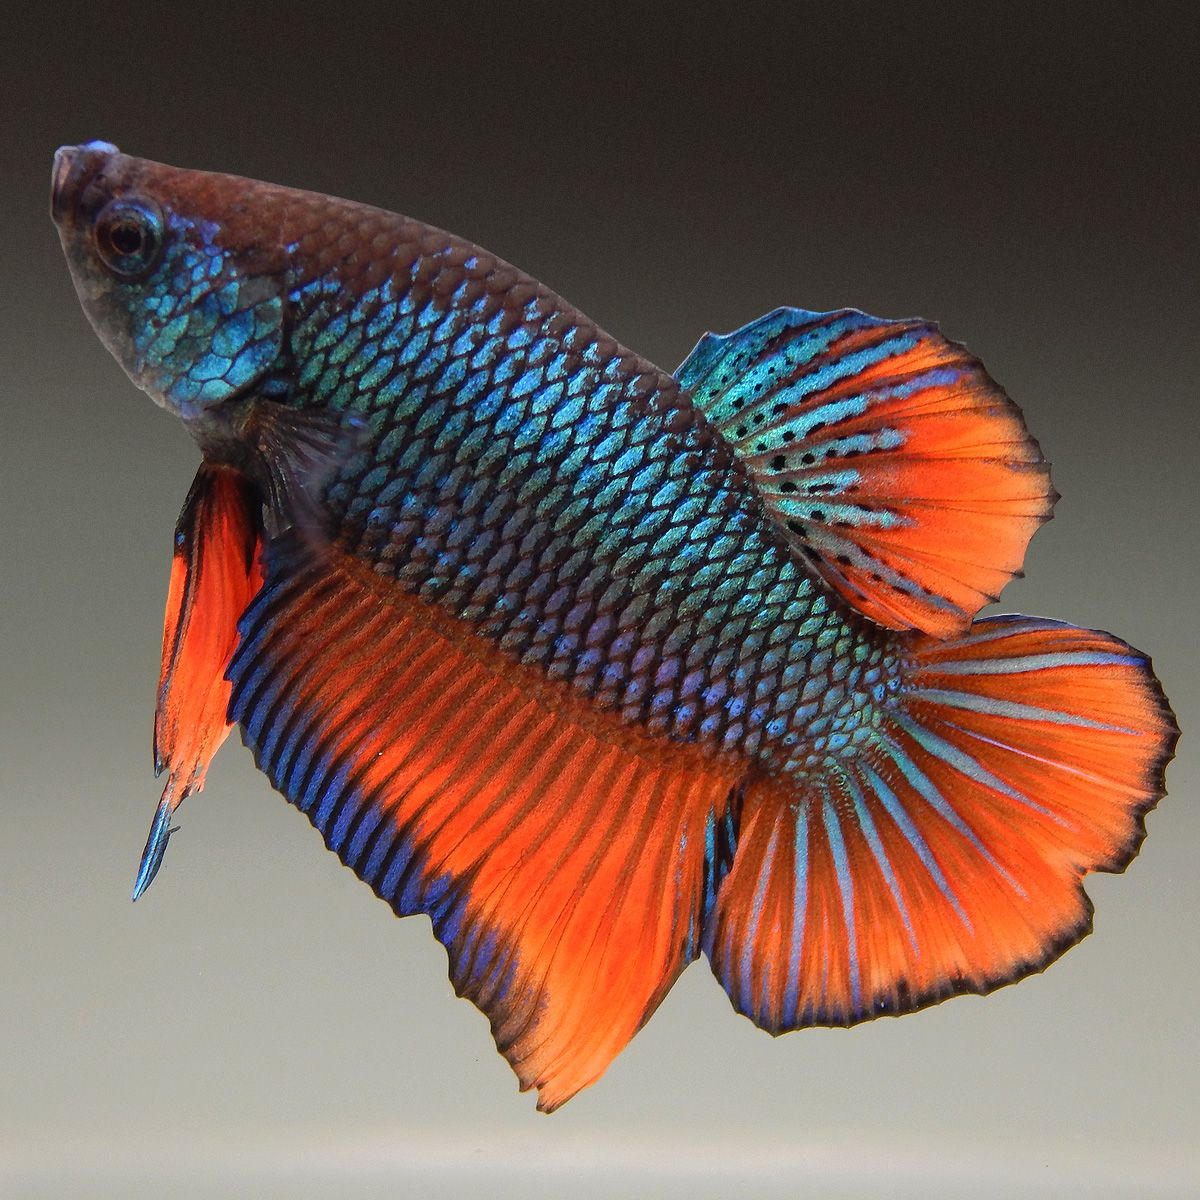 Live Betta Fish (Male) ORANGE METALLIC TURQUOISE FANCY PLAKAT ...